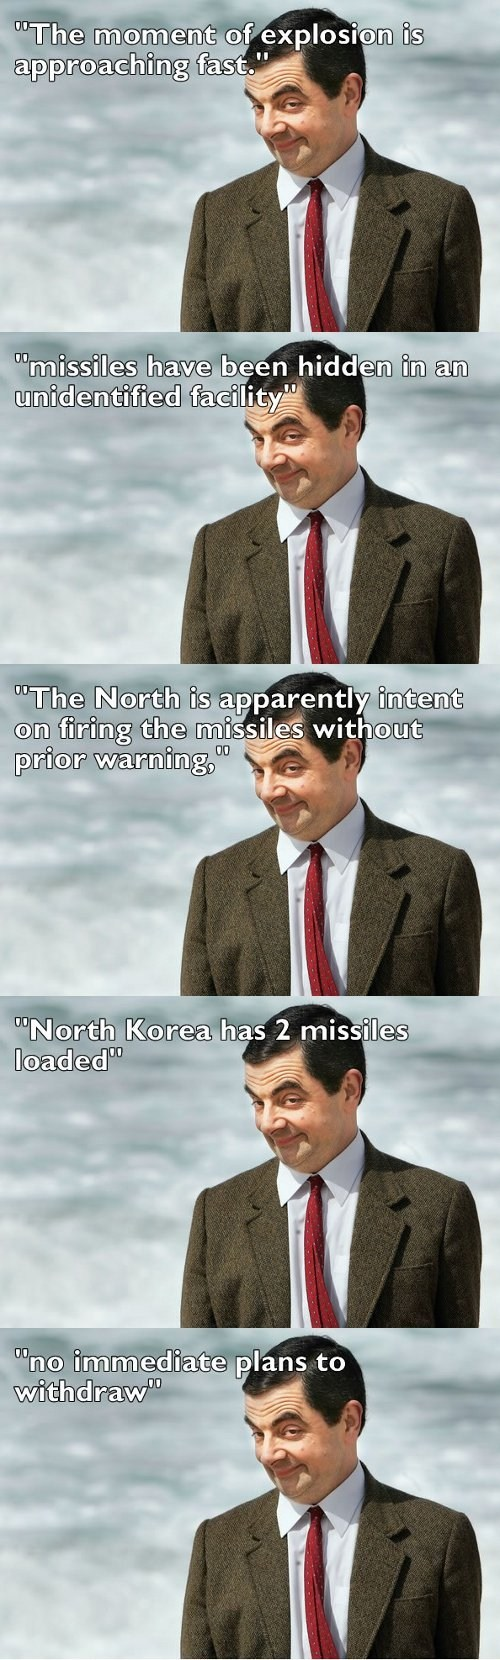 news mr bean North Korea if you know what i mean mr bean mr bean mr bean mr bean mr bean - 7267796736